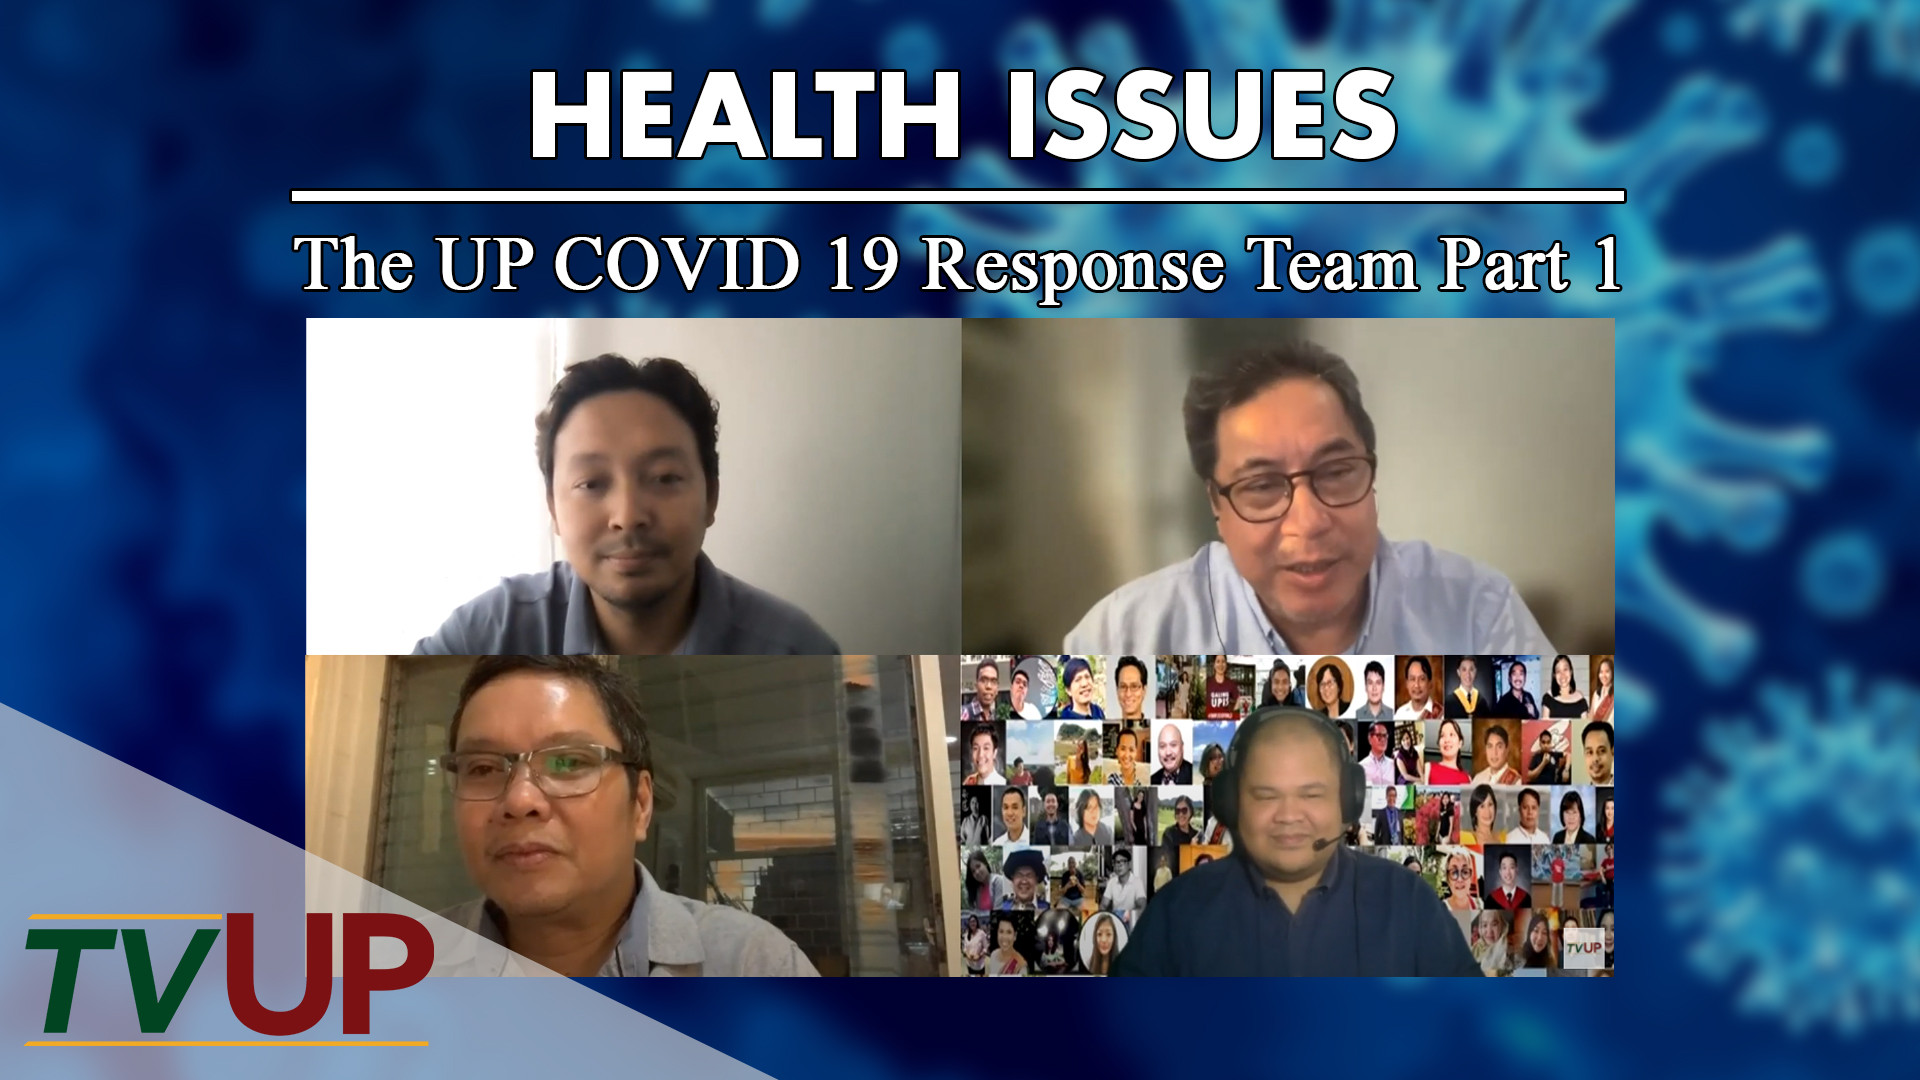 Health Issues Thumbnail The UP COVID 19 Response Team Part 1